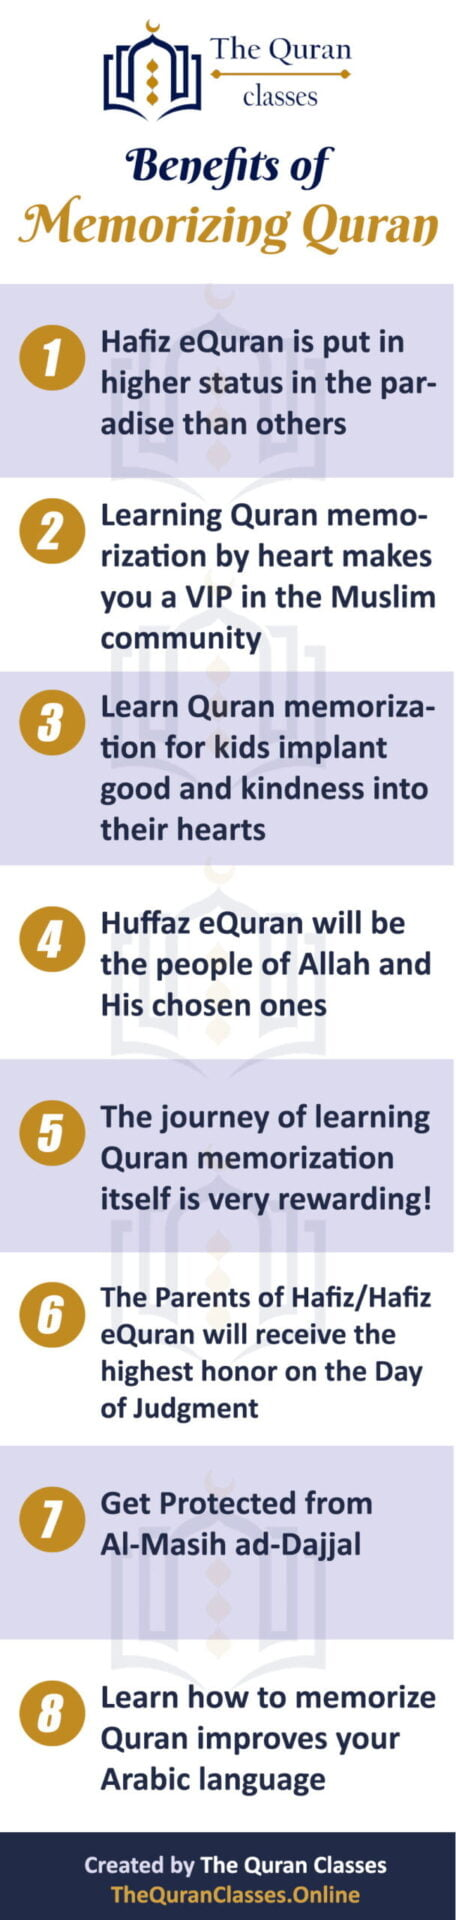 8 Benefits of Memorizing Quran (infographic) - The Quran Classes